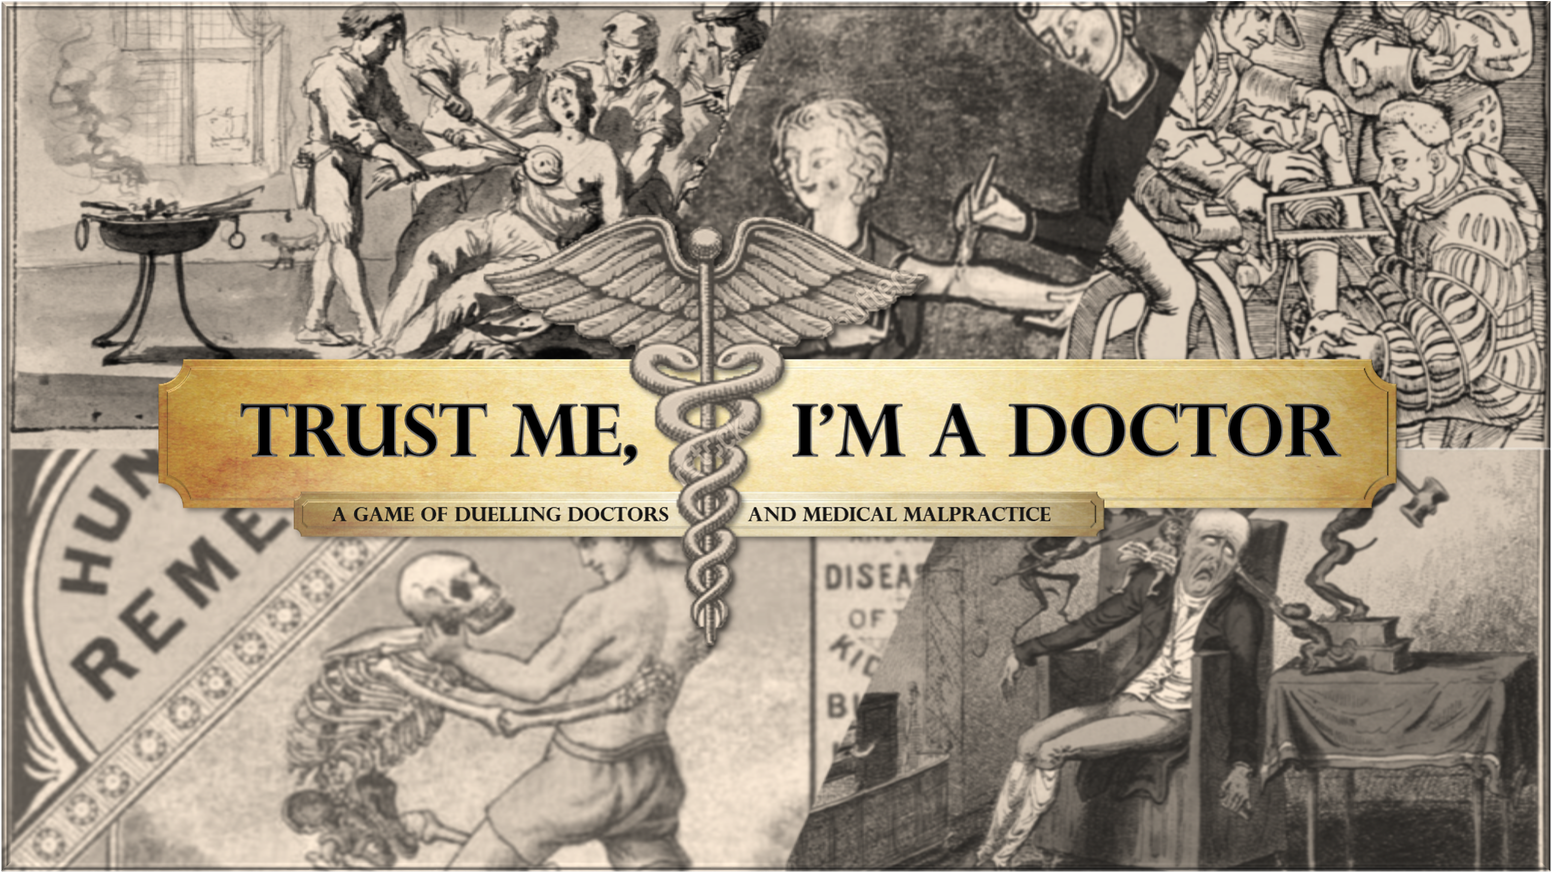 Become a doctor in the 1800's, drunk as hell and curing plague and blood ghosts with cocaine and amputations!